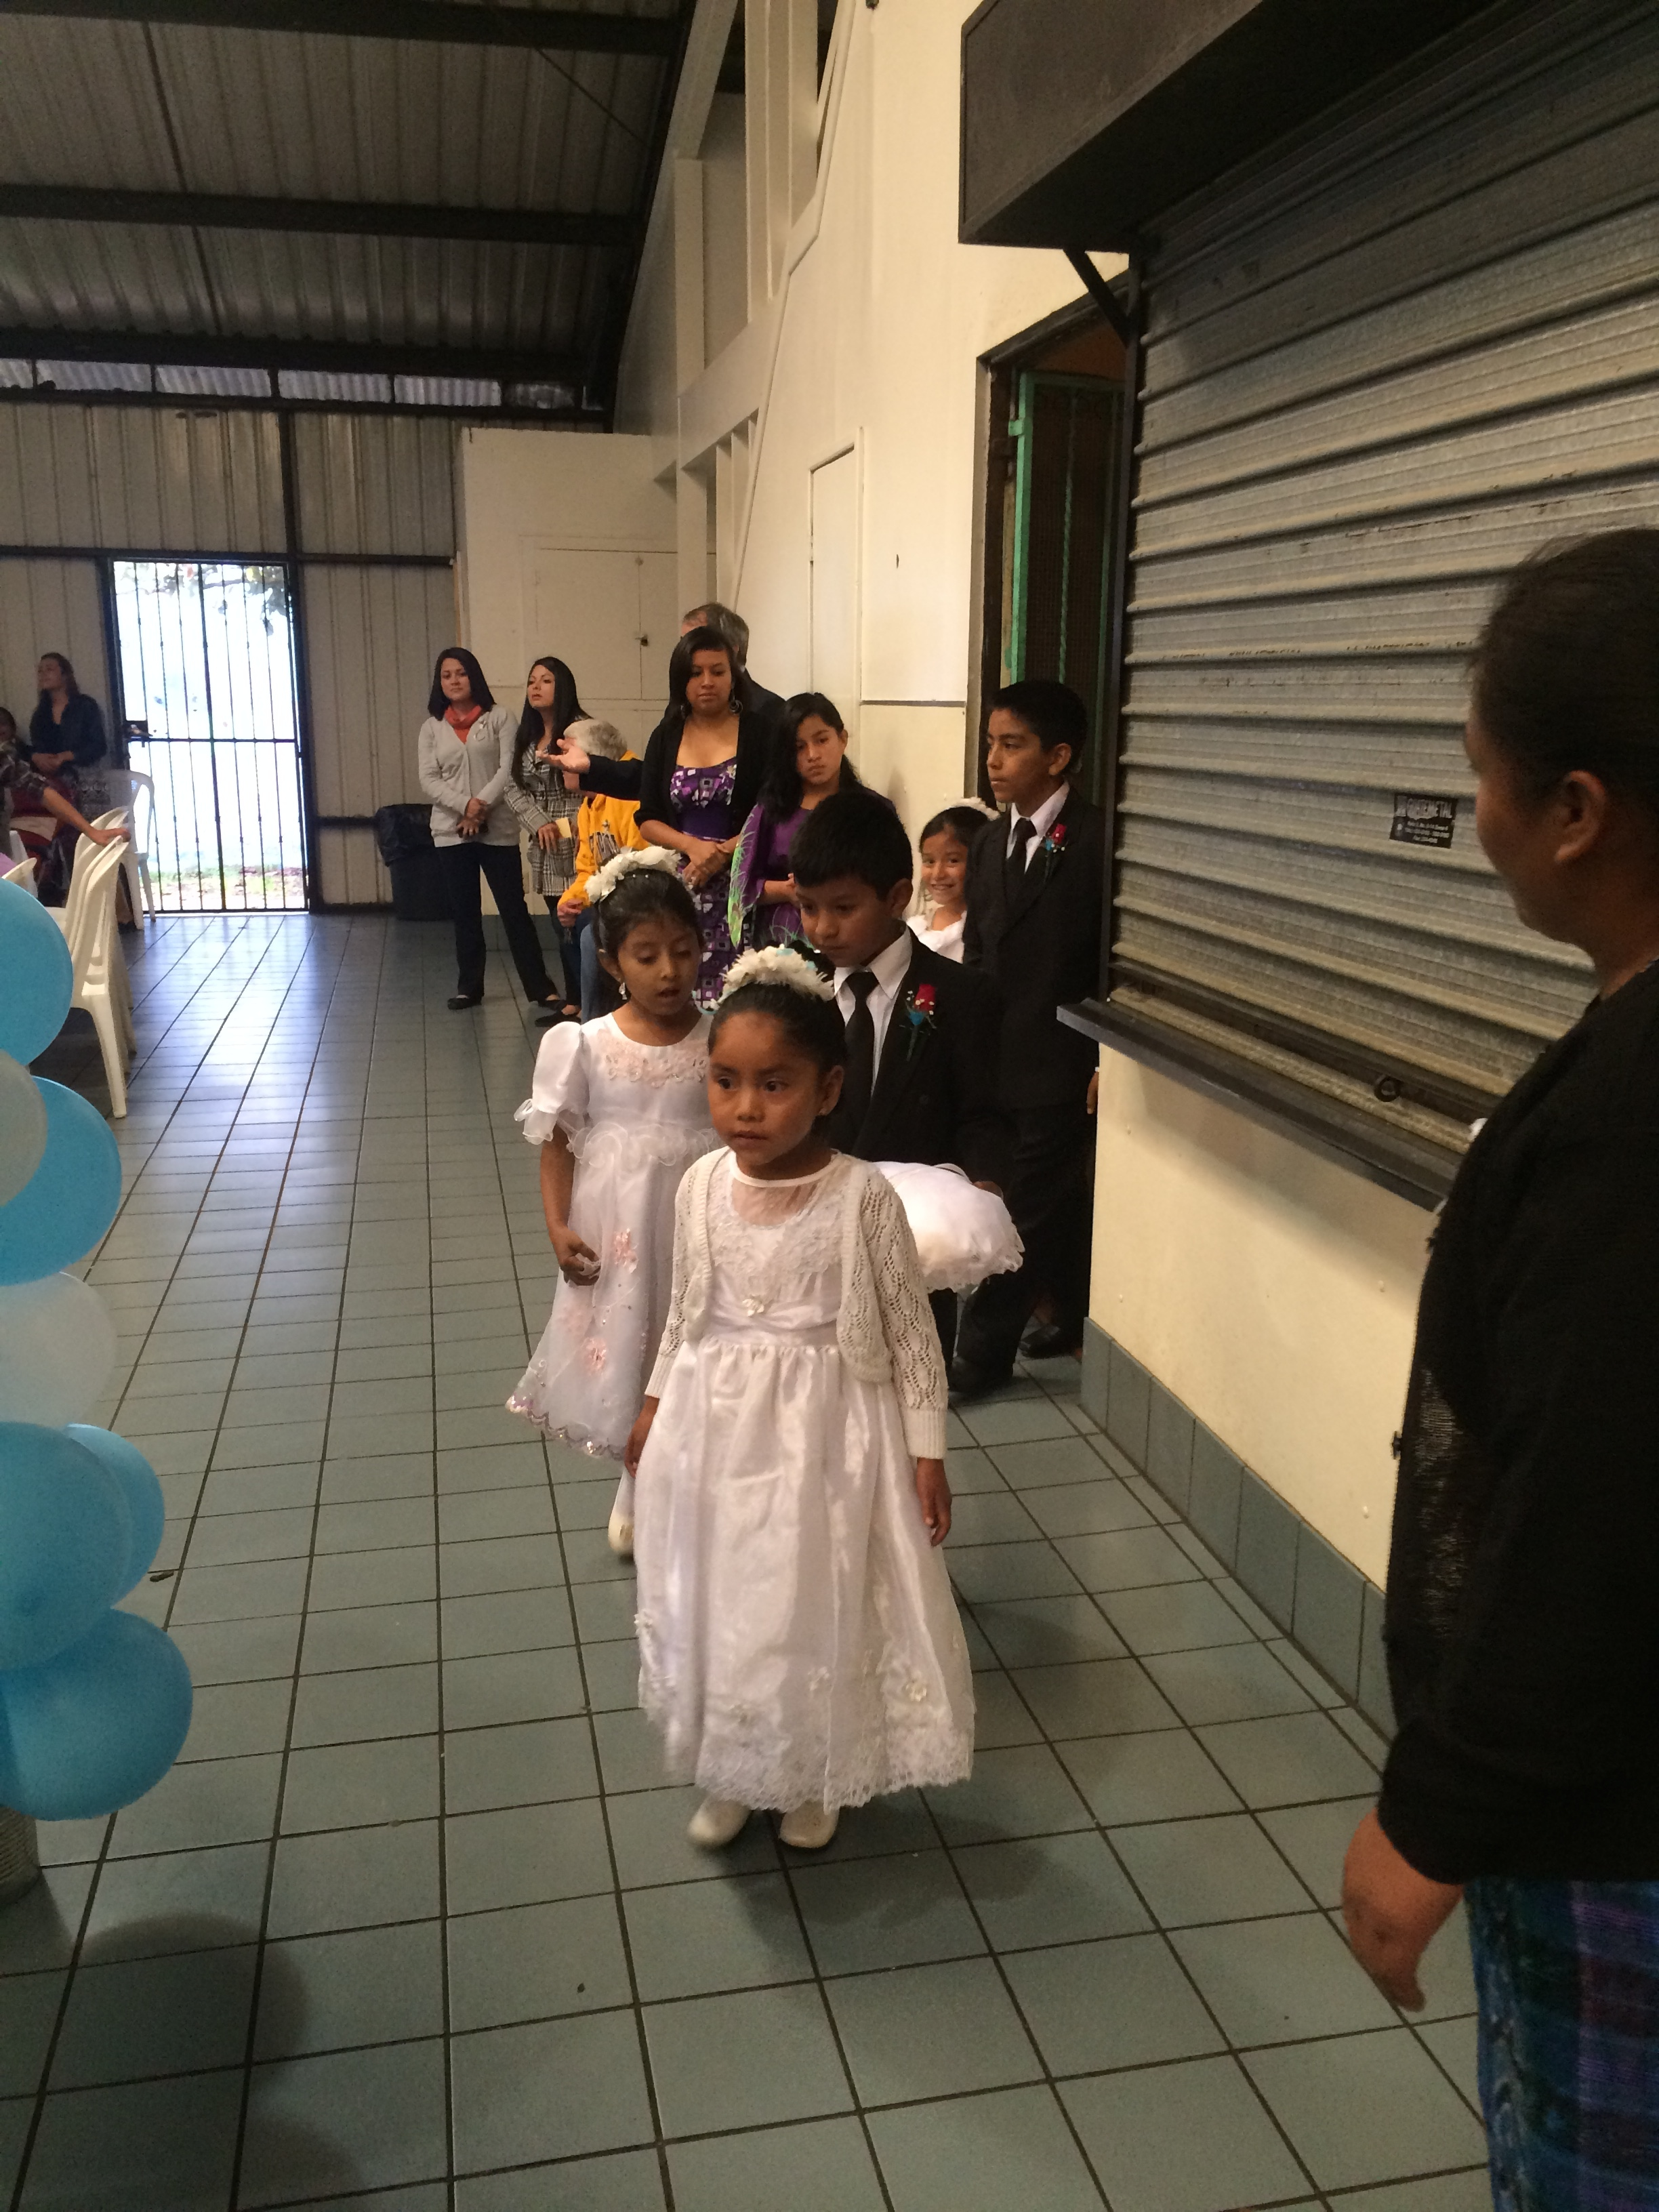 I always love to see the expressions on the kids in the wedding party